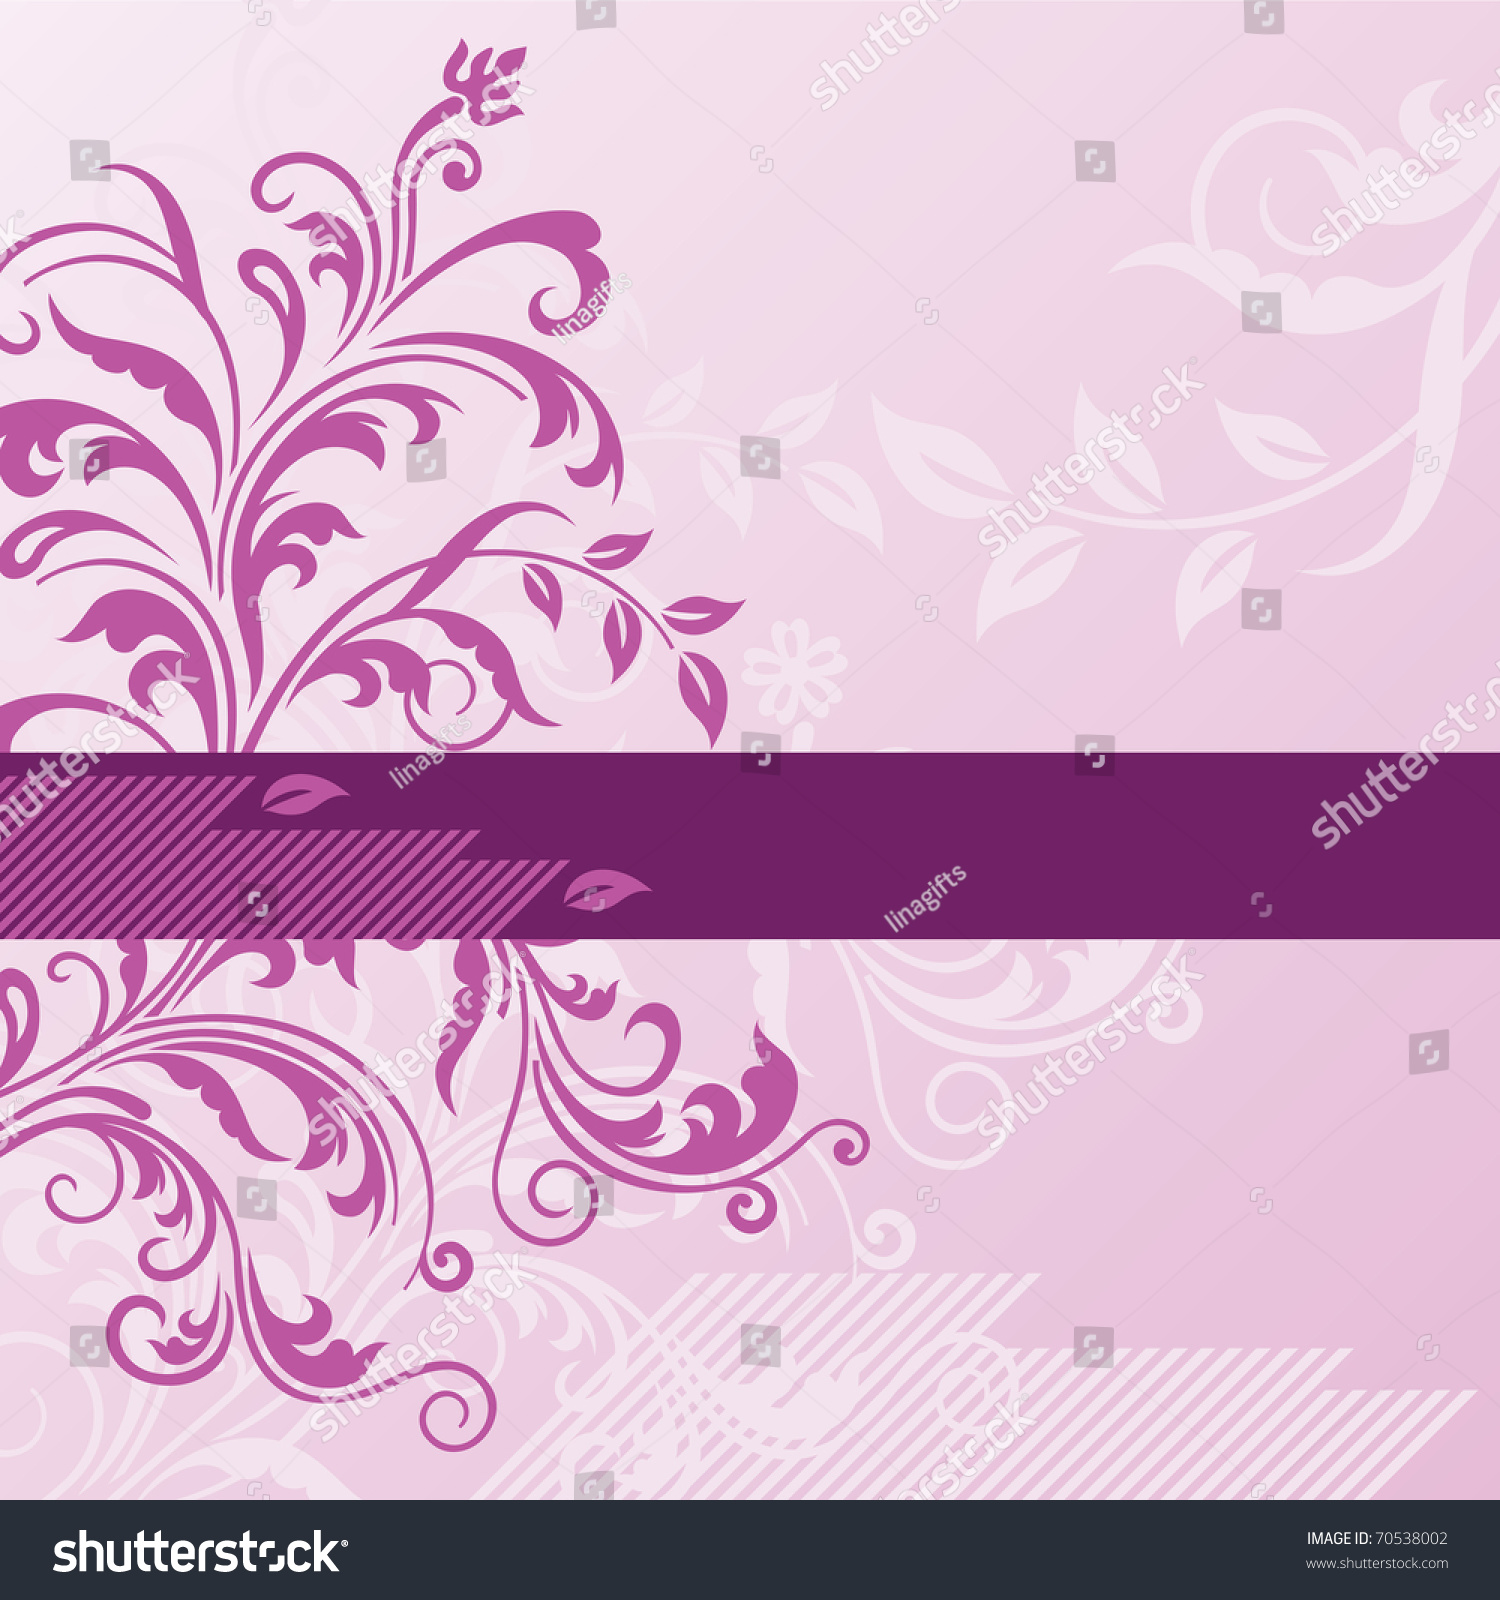 Pink Floral Background Banner Stock Vector Royalty Free 70538002